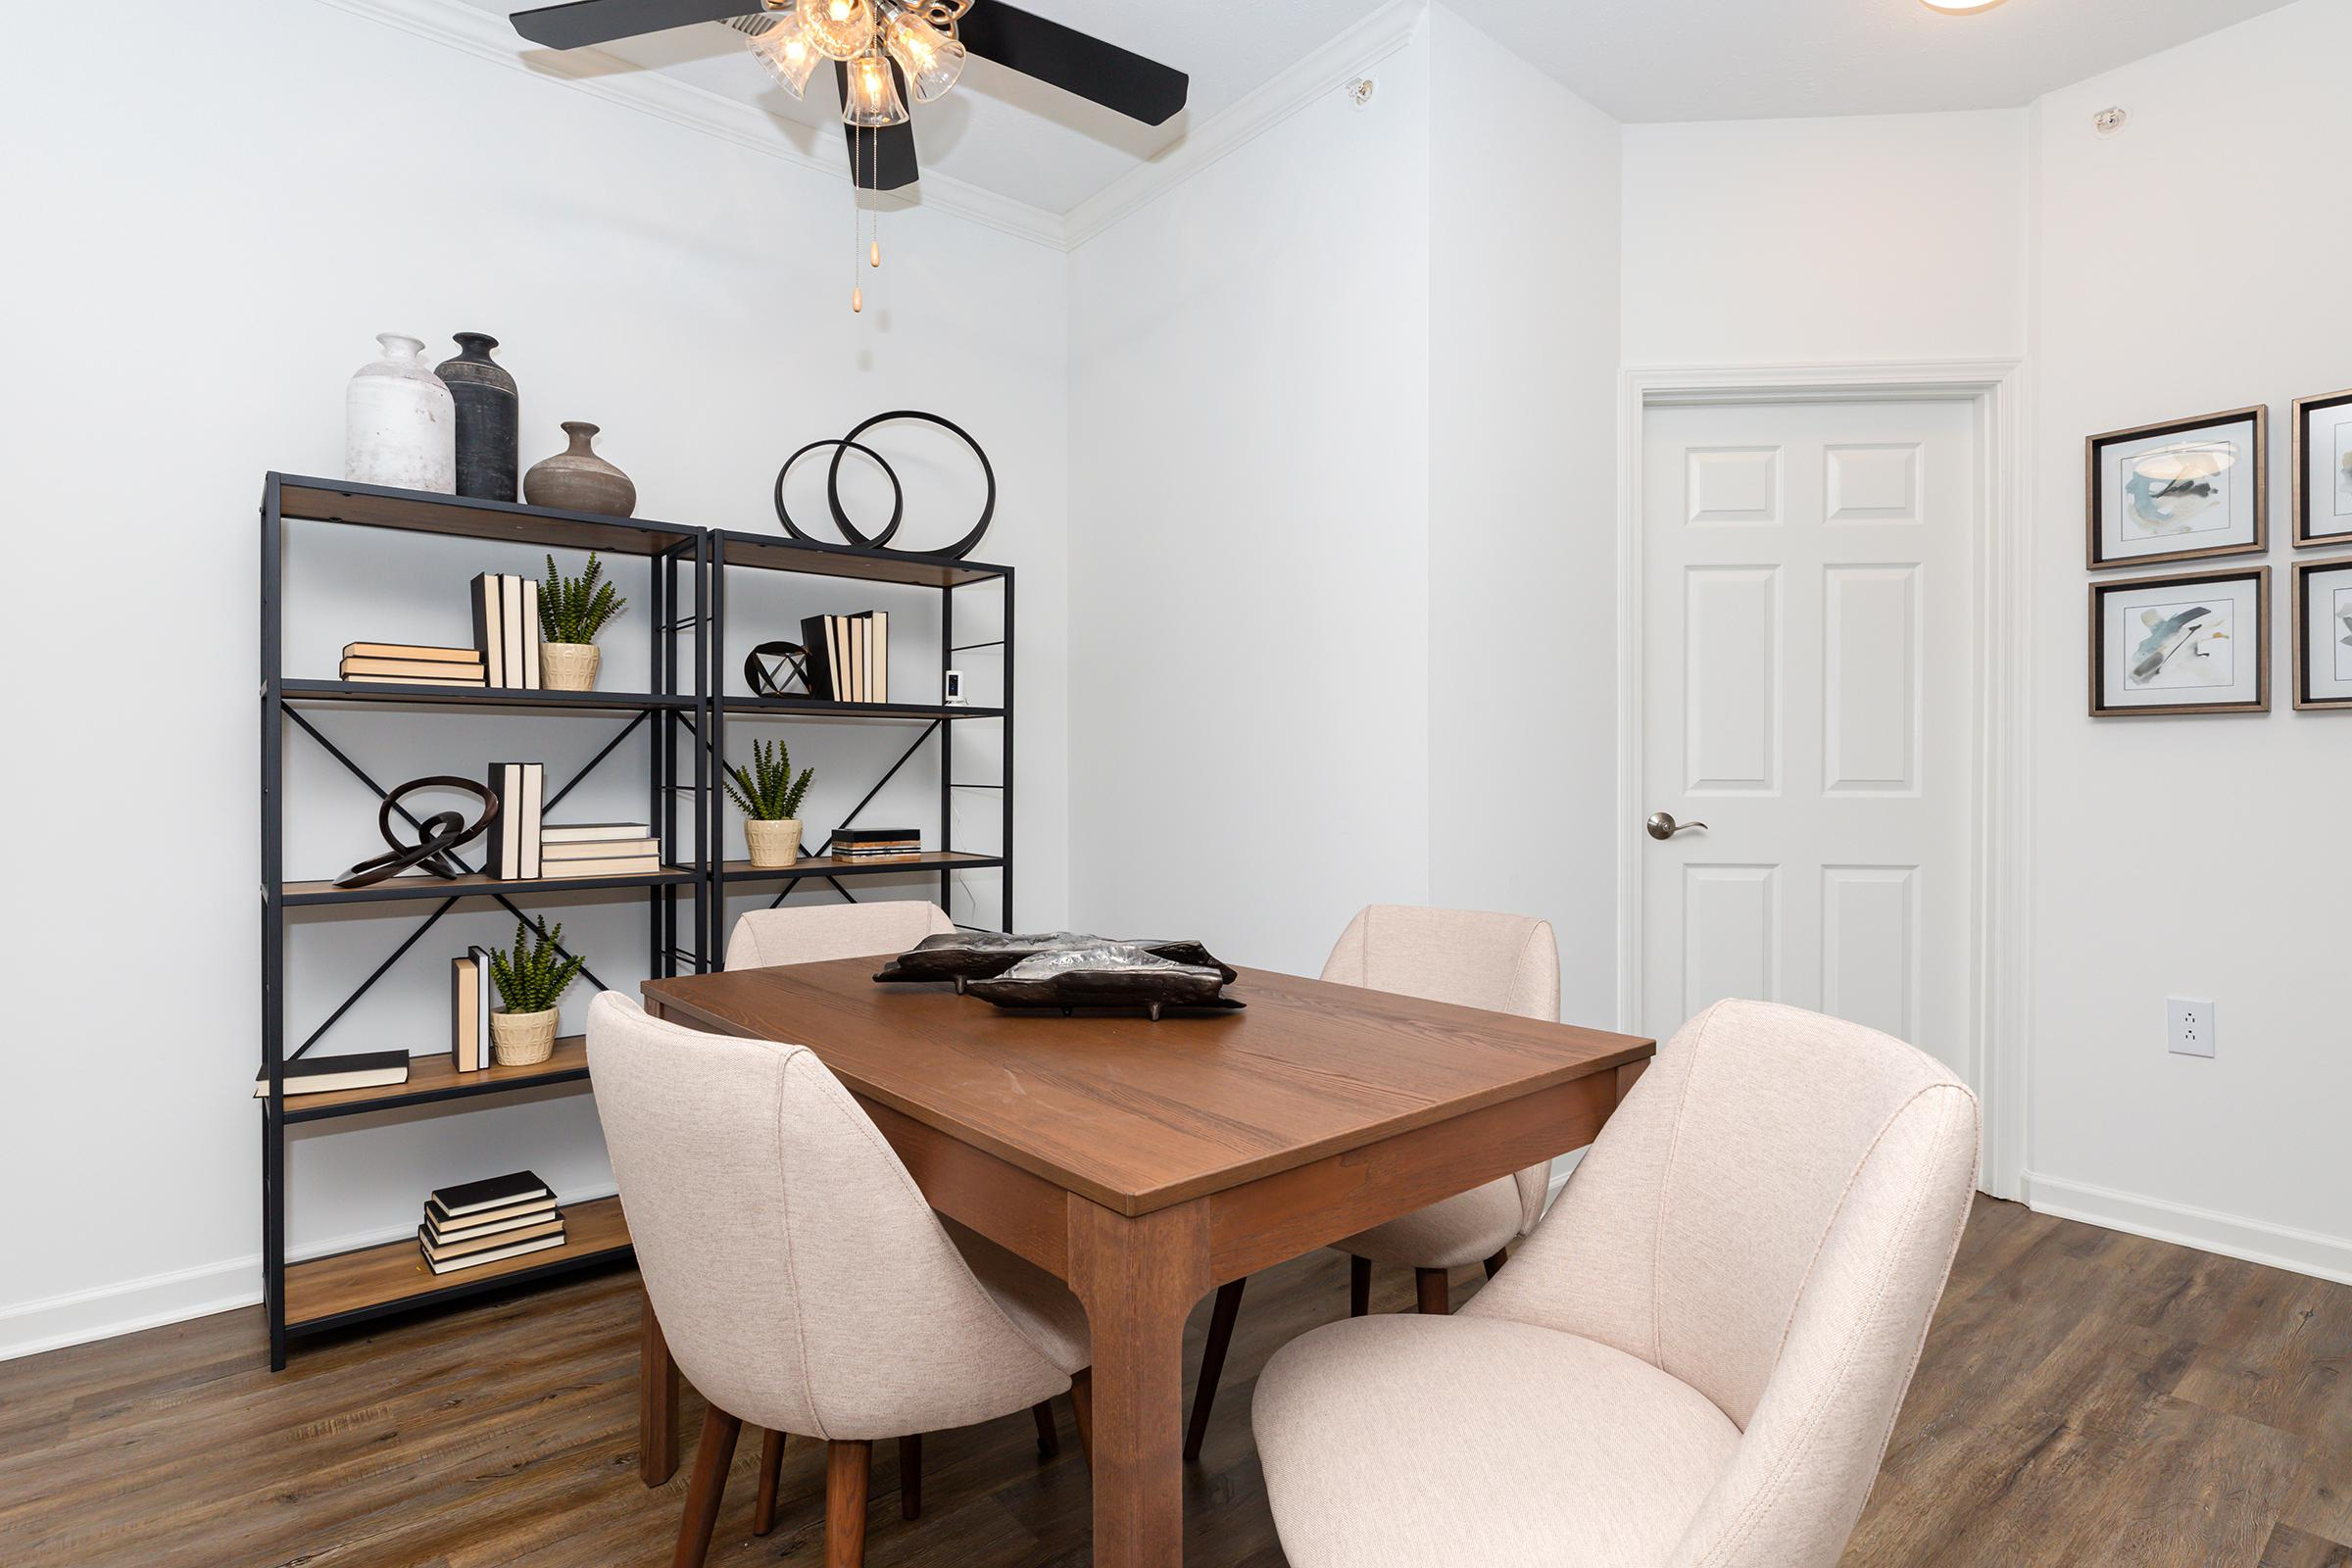 a bedroom with a desk and chair in a room